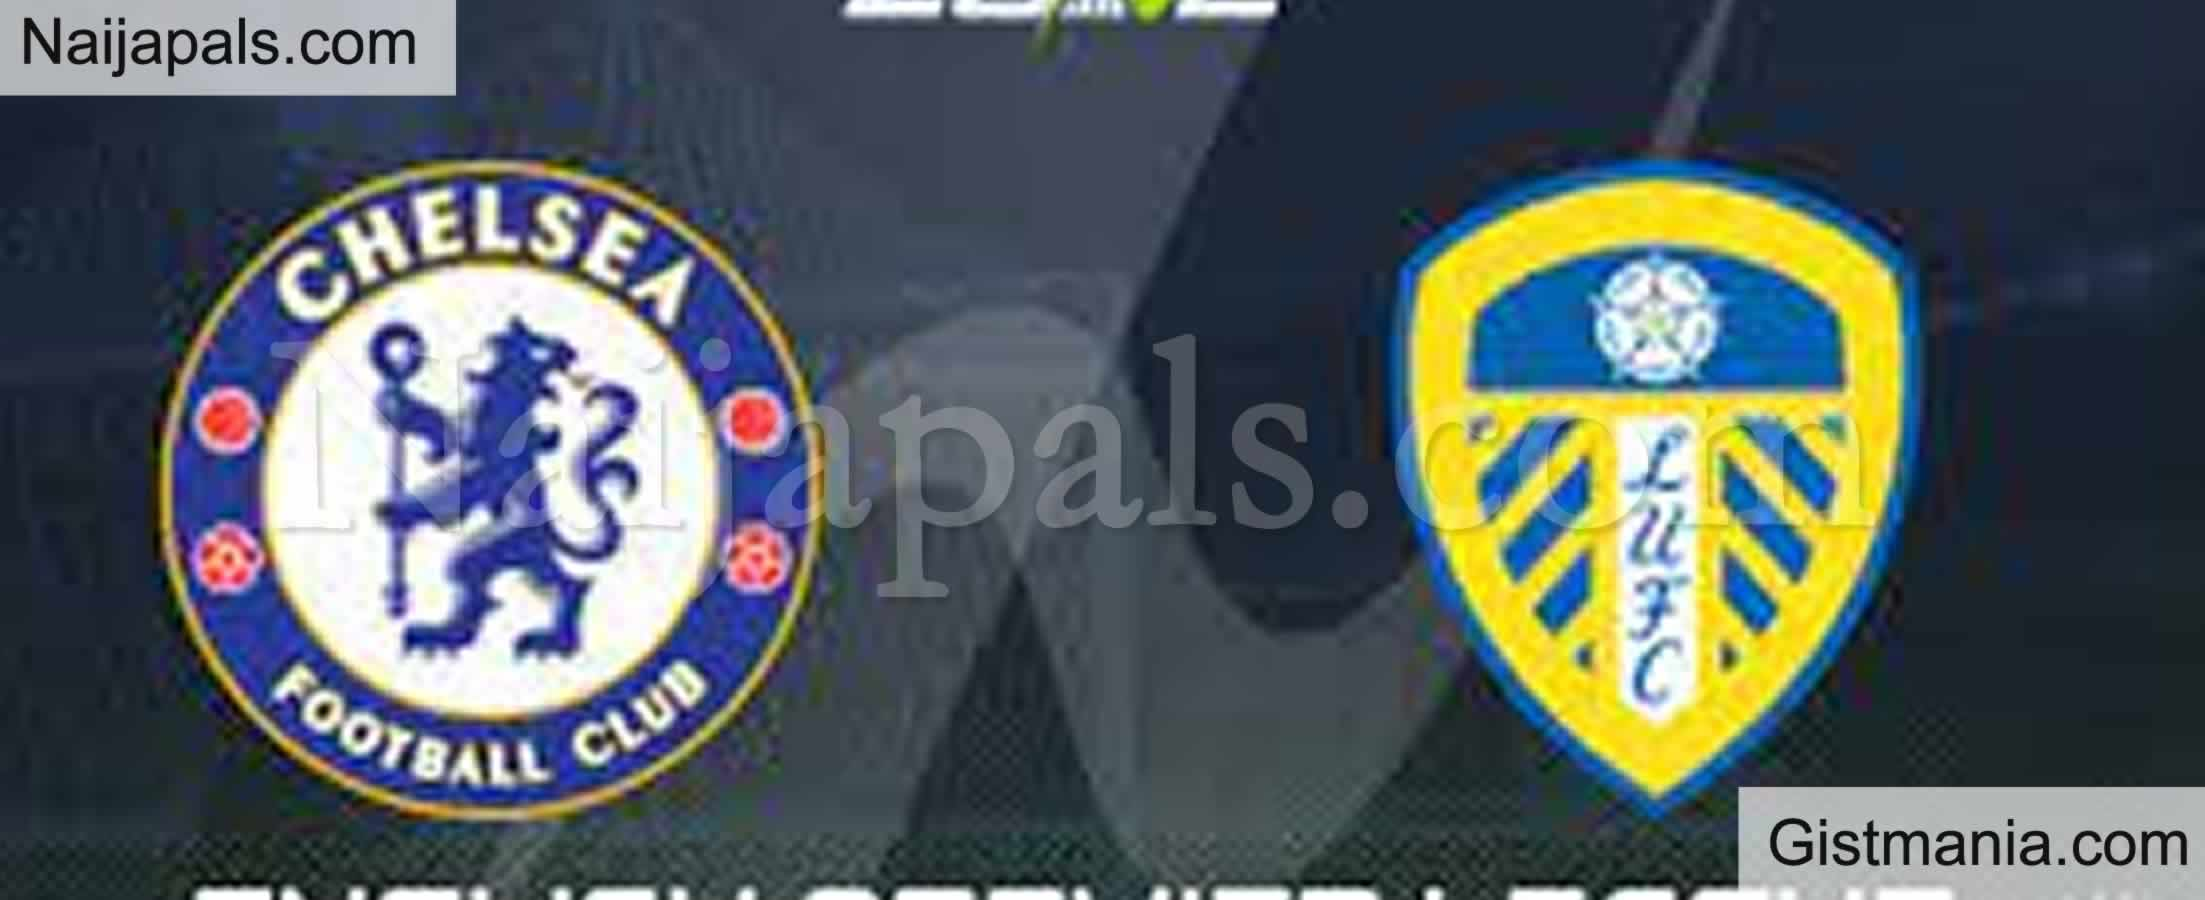 <img alt='.' class='lazyload' data-src='https://img.gistmania.com/emot/soccer.gif' /> <b>Chelsea v Leeds : English Premier League Match, Team News, Goal Scorers and Stats</b>